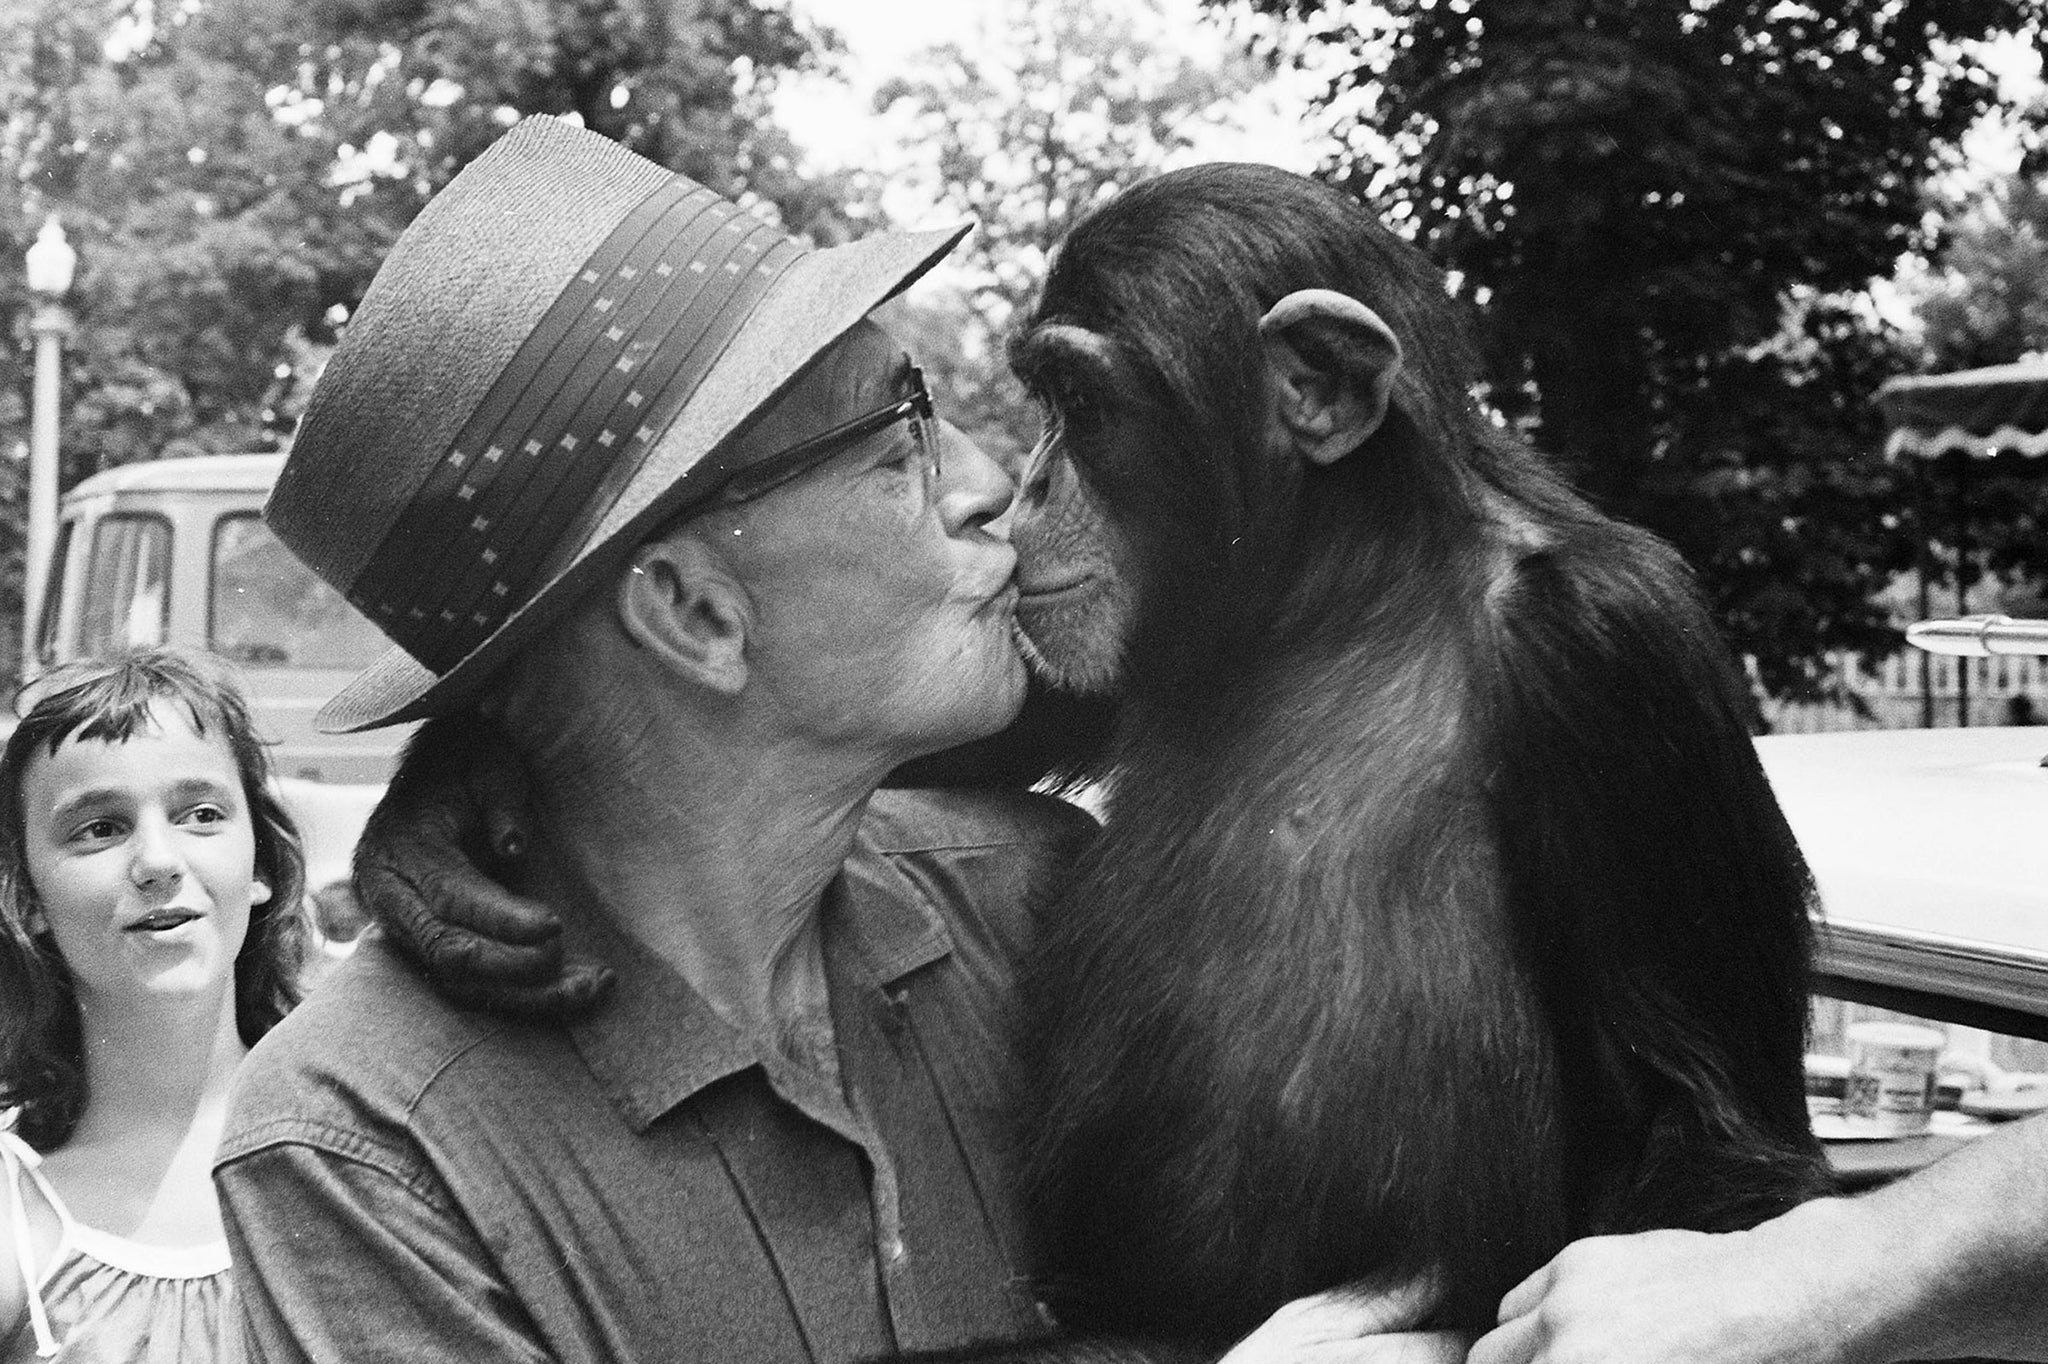 A man and chimpanzee at Weed Park Zoo, 1965. -- Muscatine Journal